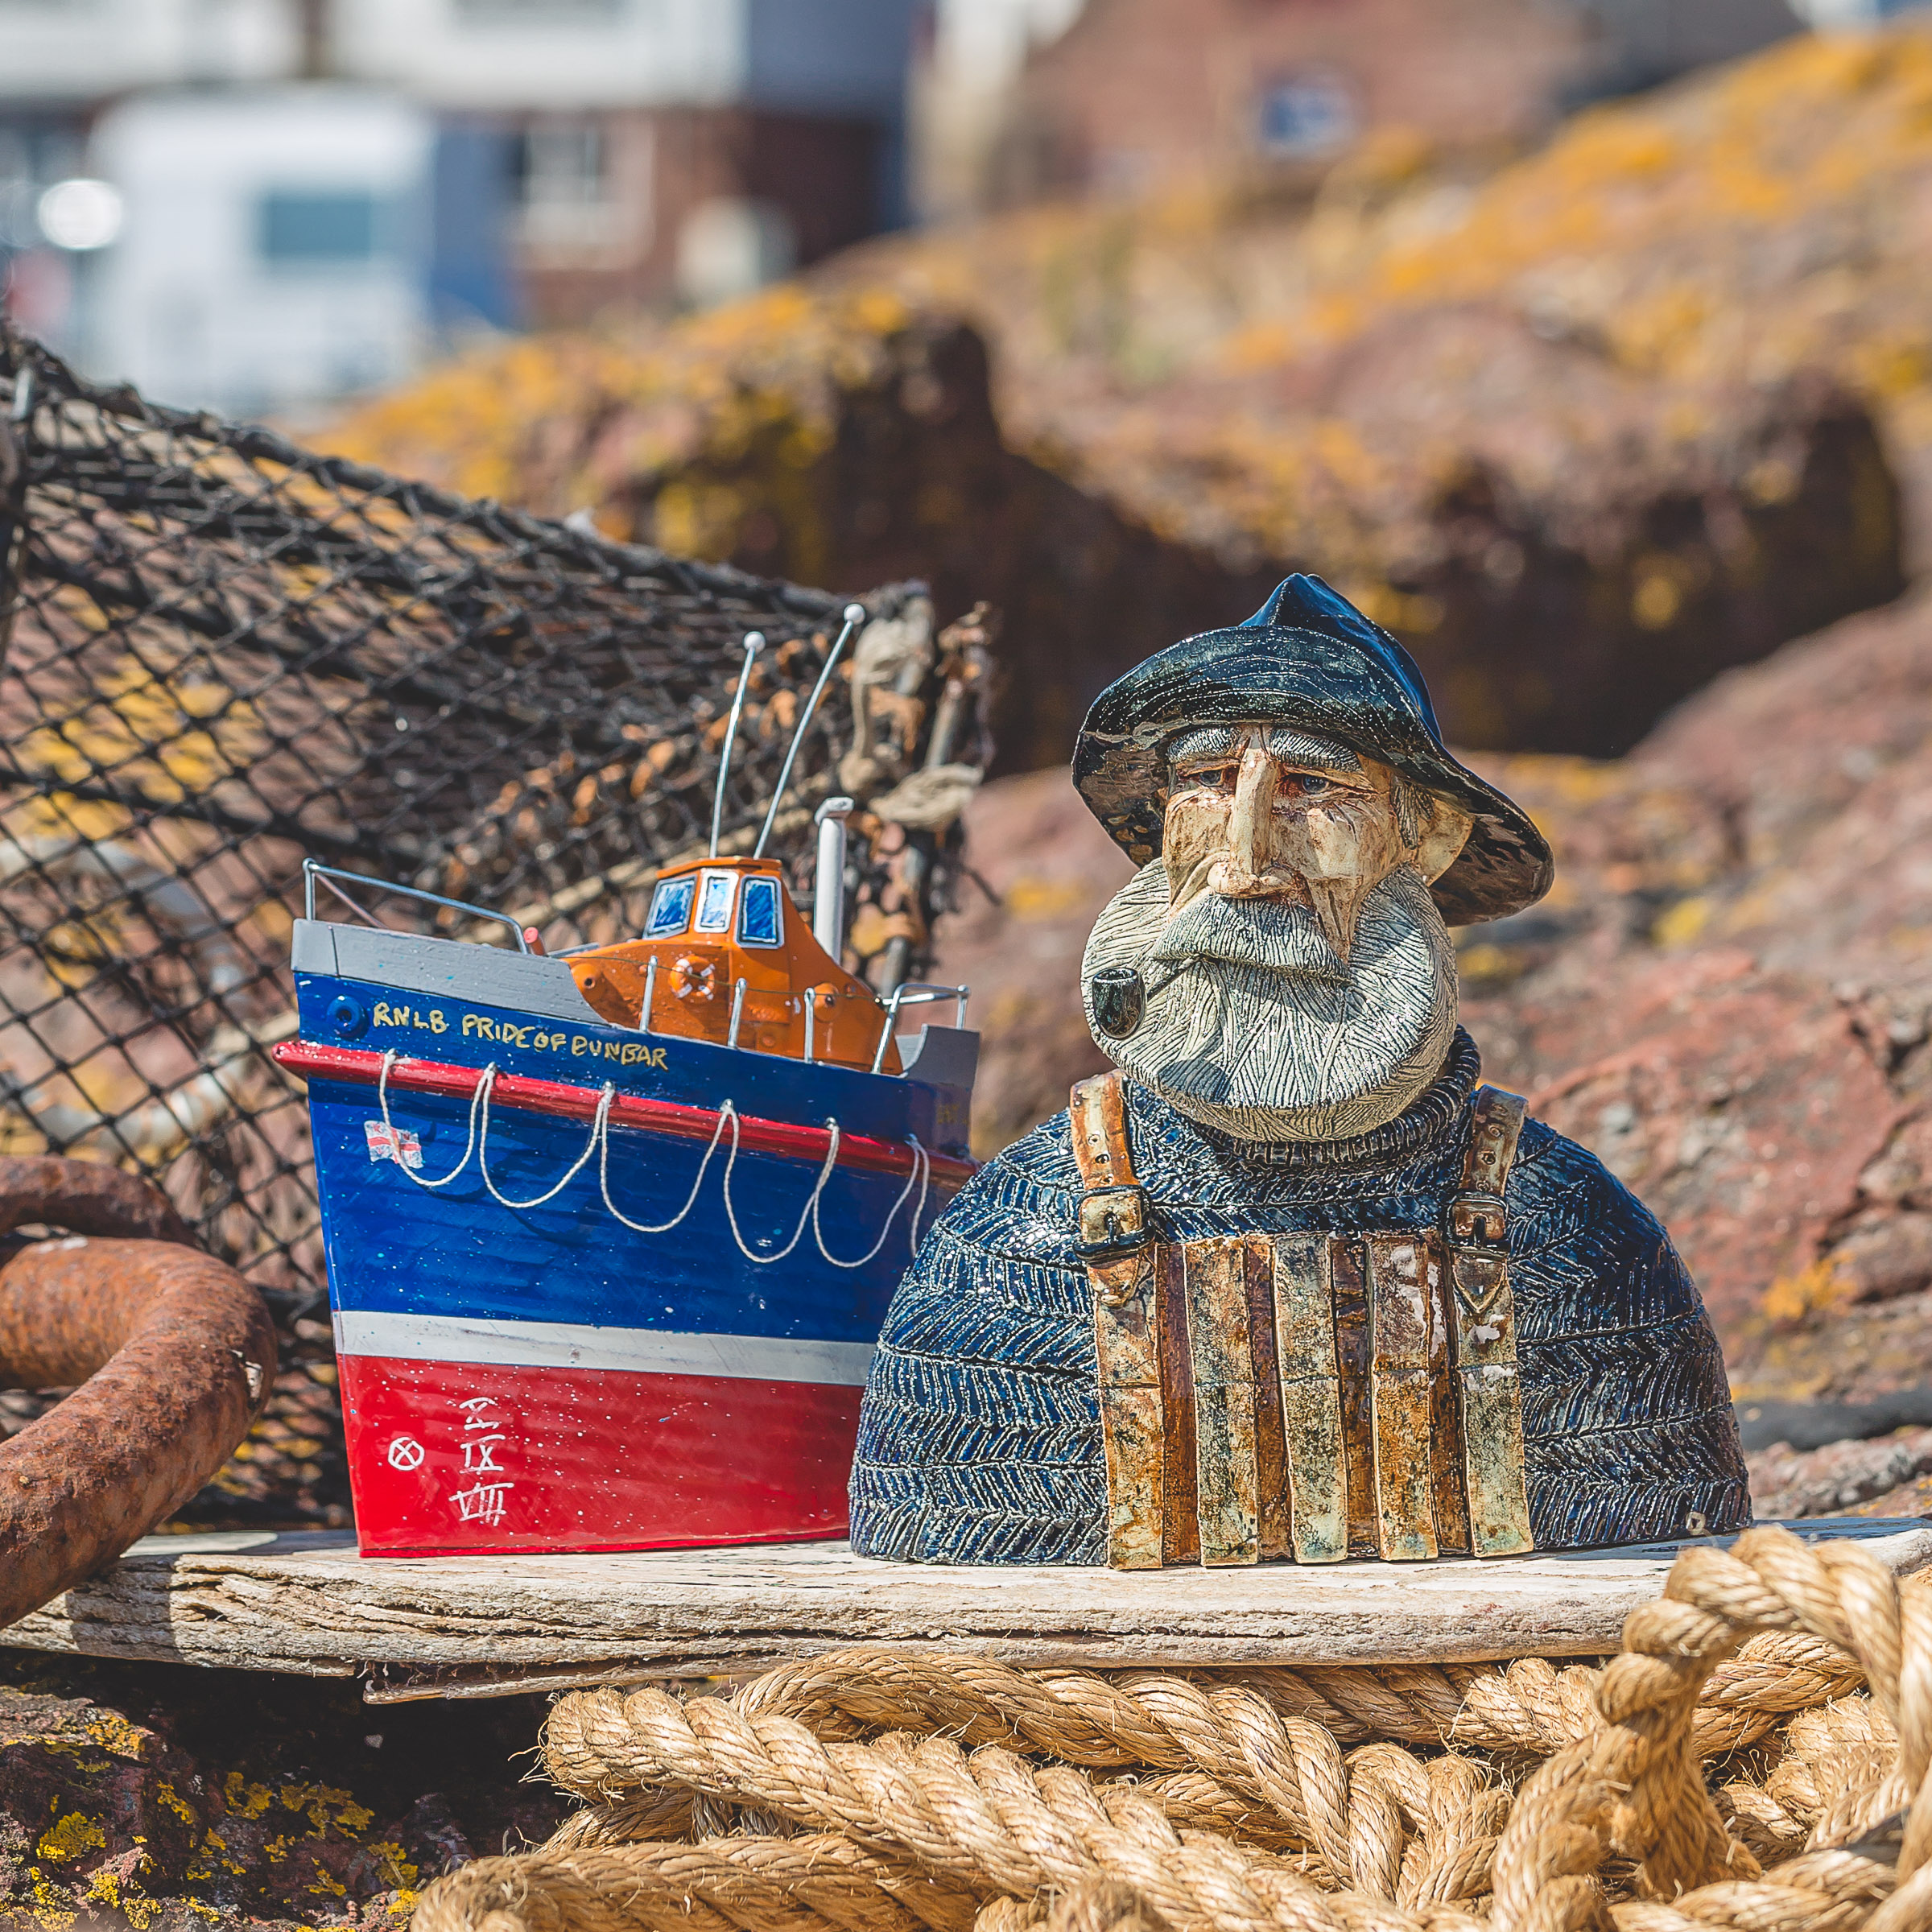 The two pieces auctioned – the rugged lifeboat man designed by Suffolk-based Joe Lawrence and the lifeboat created from recycled objects by Seth Draper (photo by Nick Mailer)